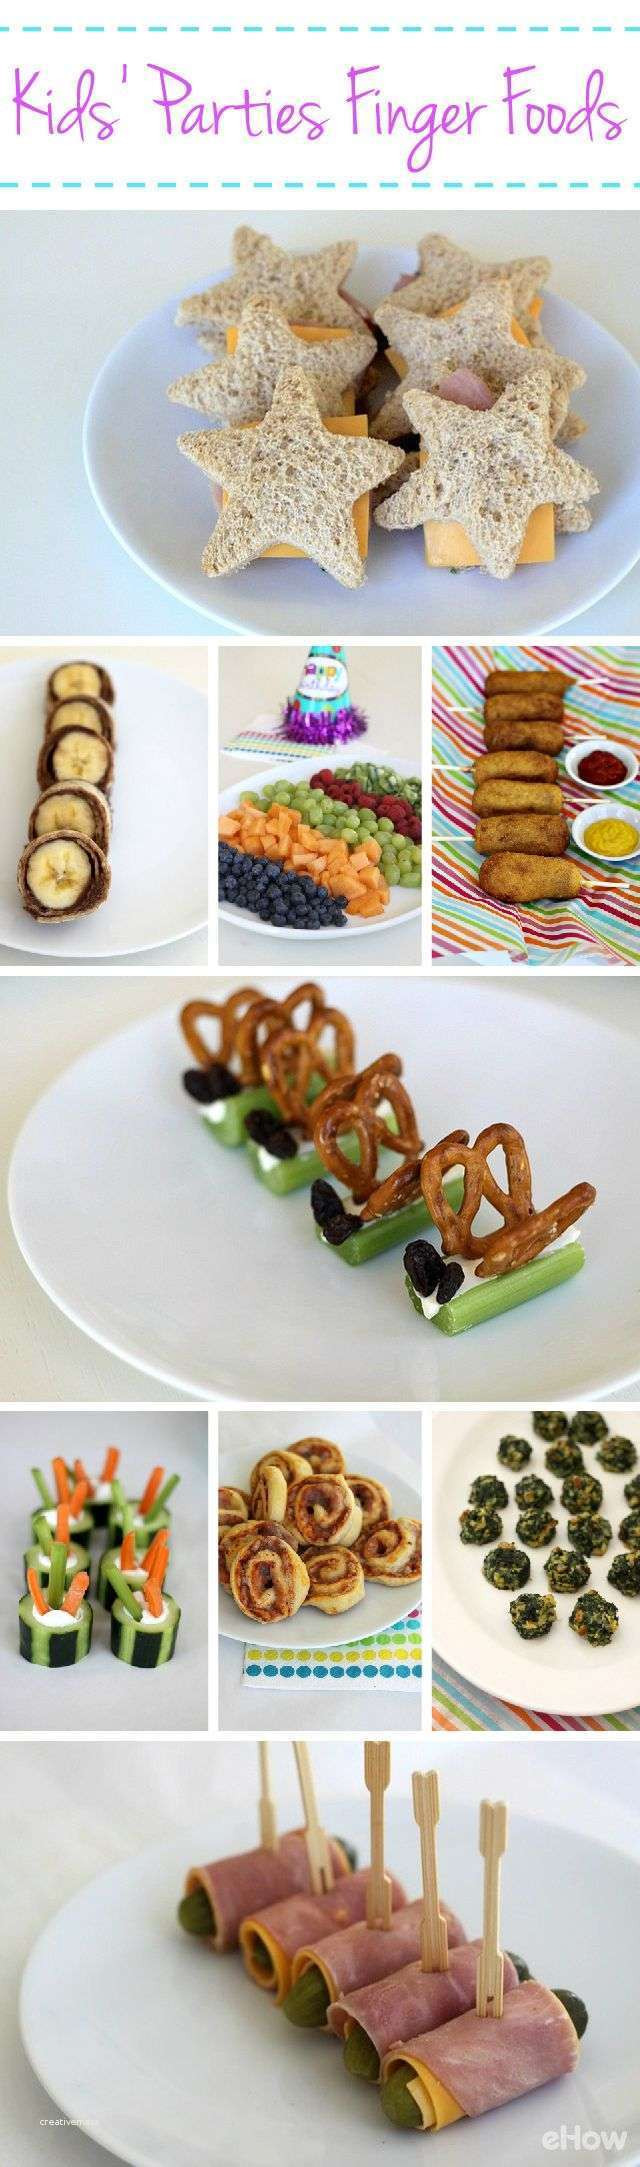 Best ideas about Kids Birthday Party Finger Food Ideas . Save or Pin Lovely Birthday Party Finger Food Ideas for Adults Now.